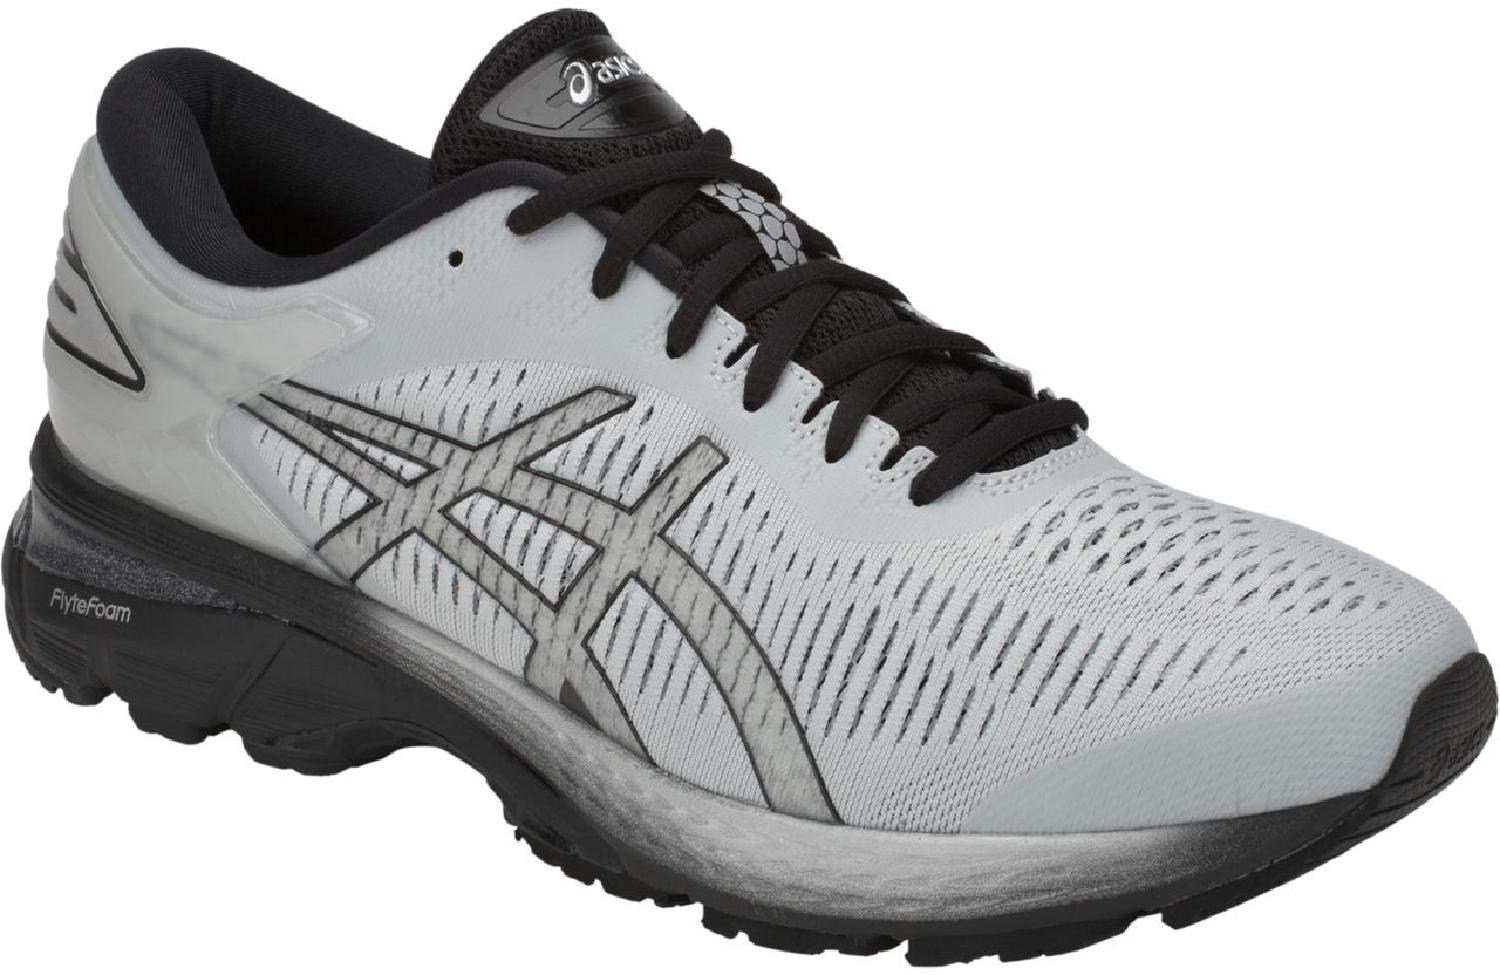 ASICS GEL-Kayano 25 Road-Running Shoes - Men's